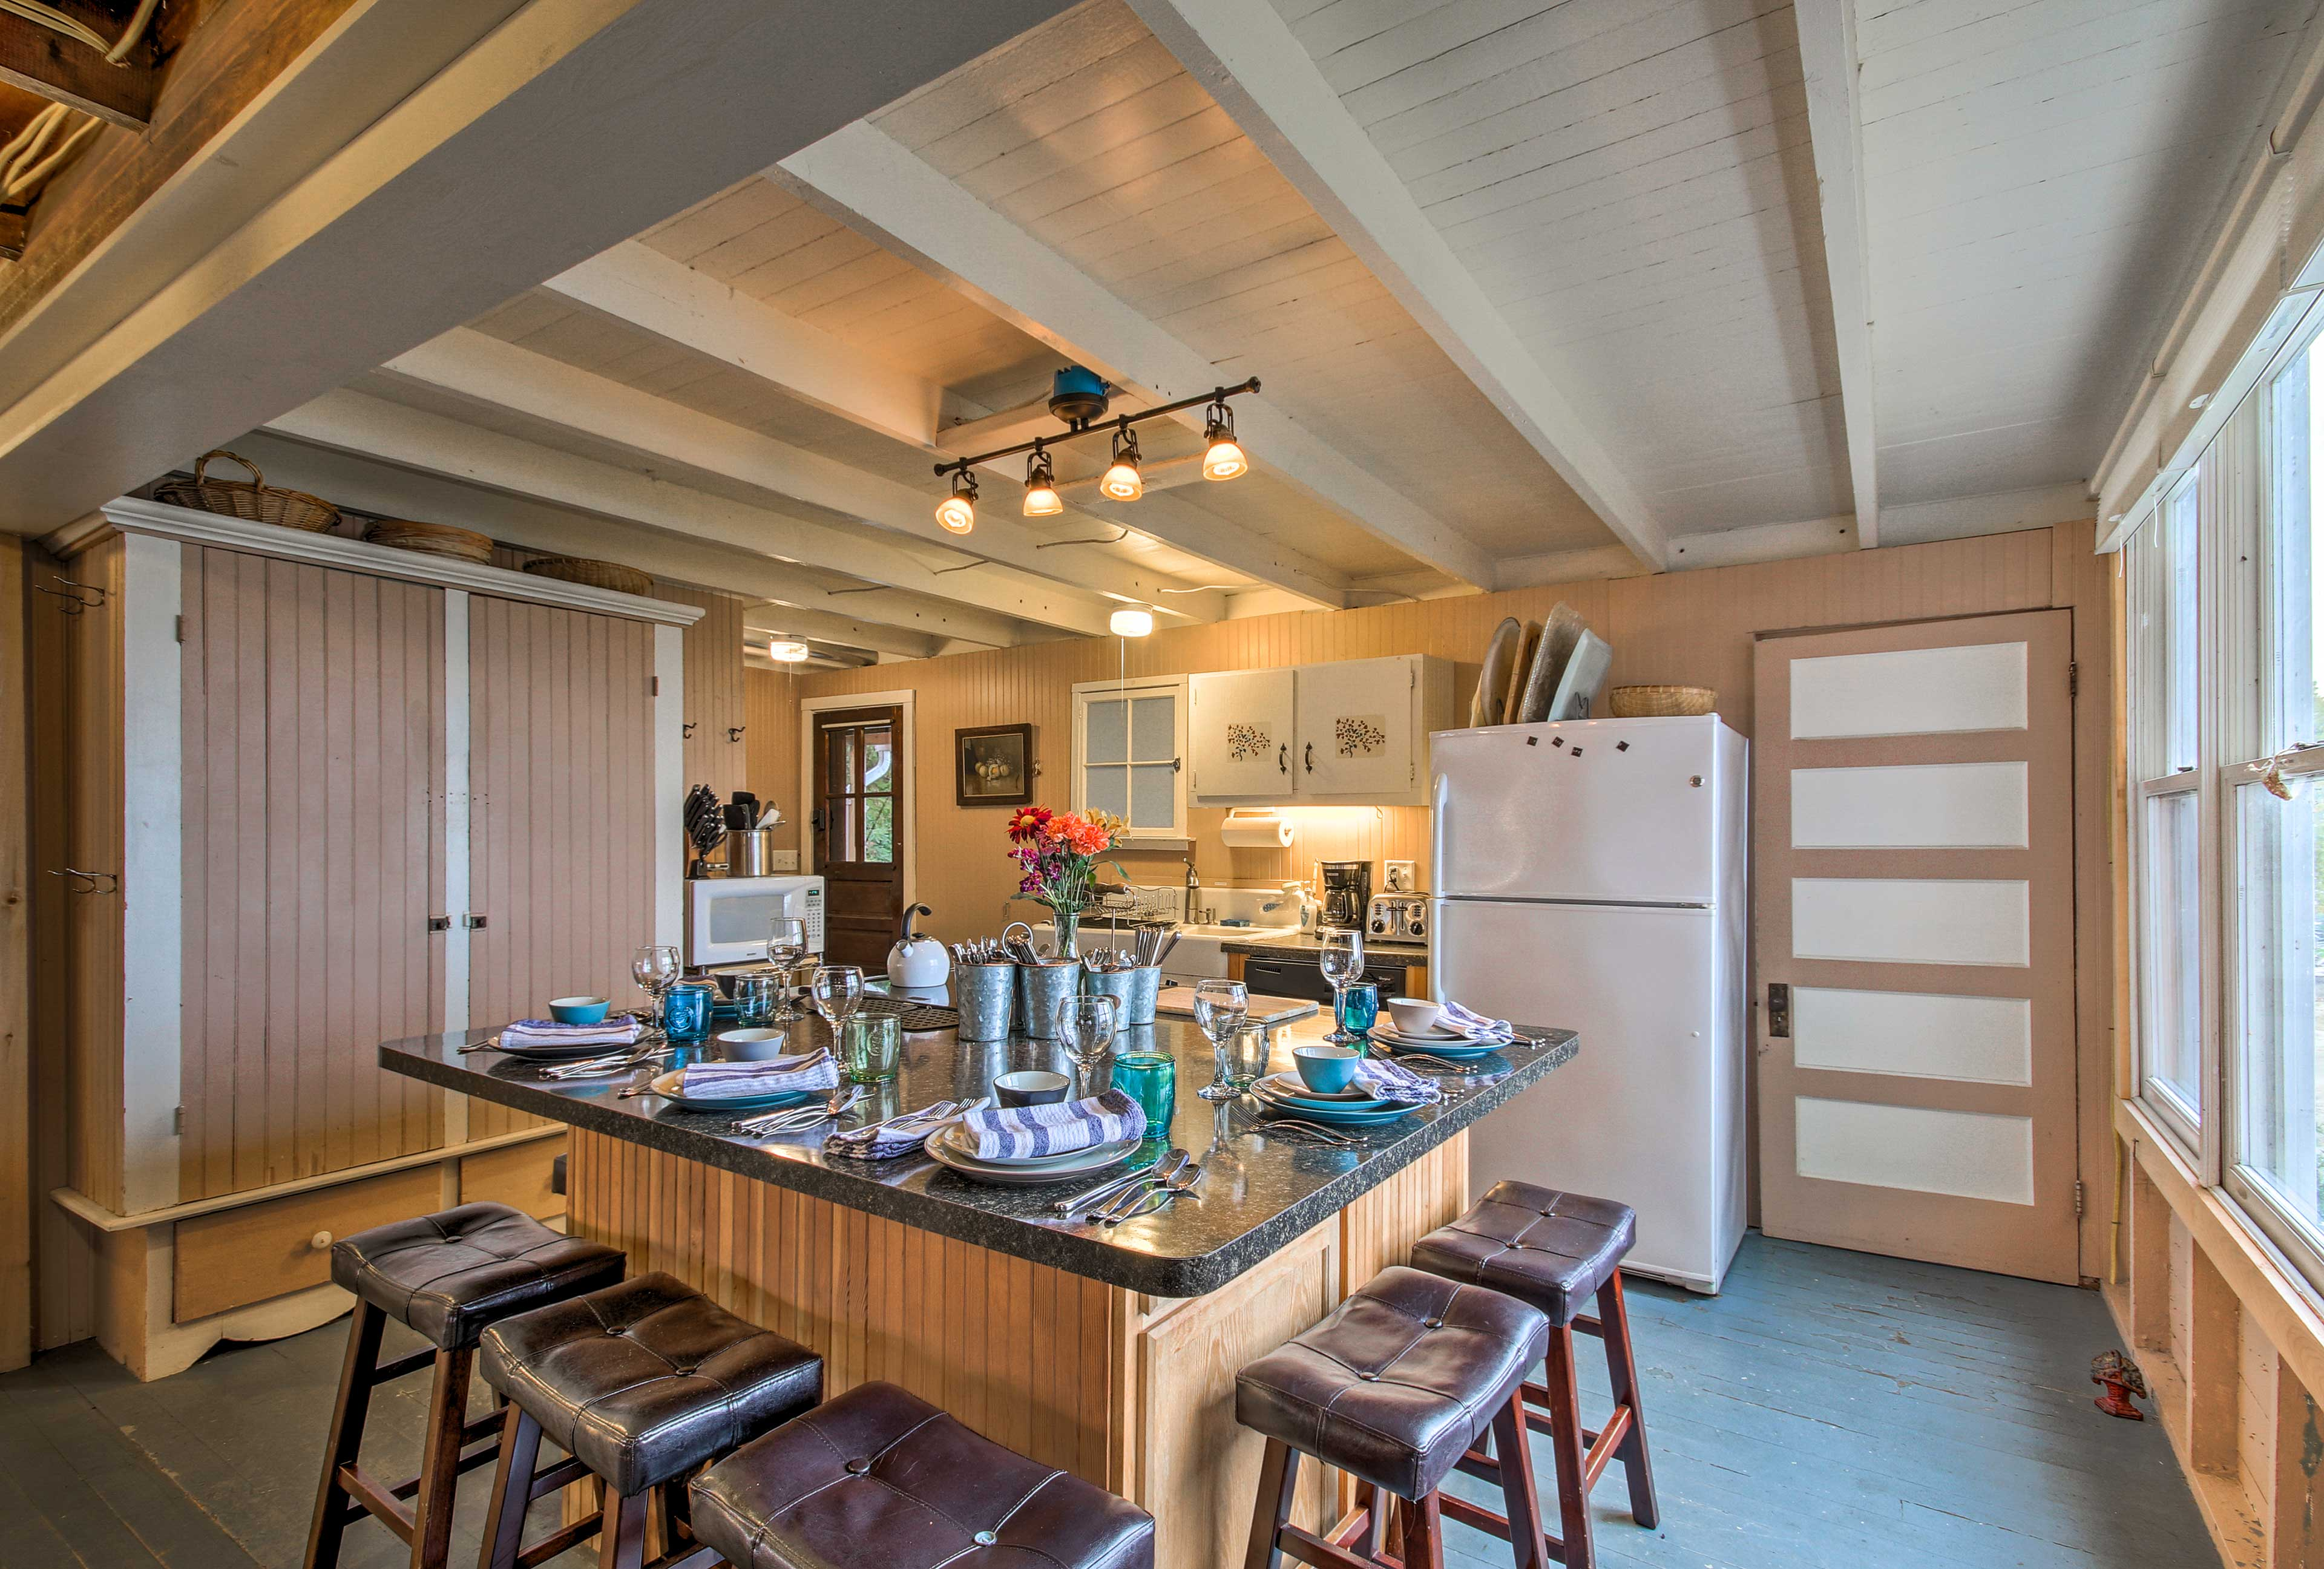 Grab a seat at this large eat-around island for breakfast or a quick snack.